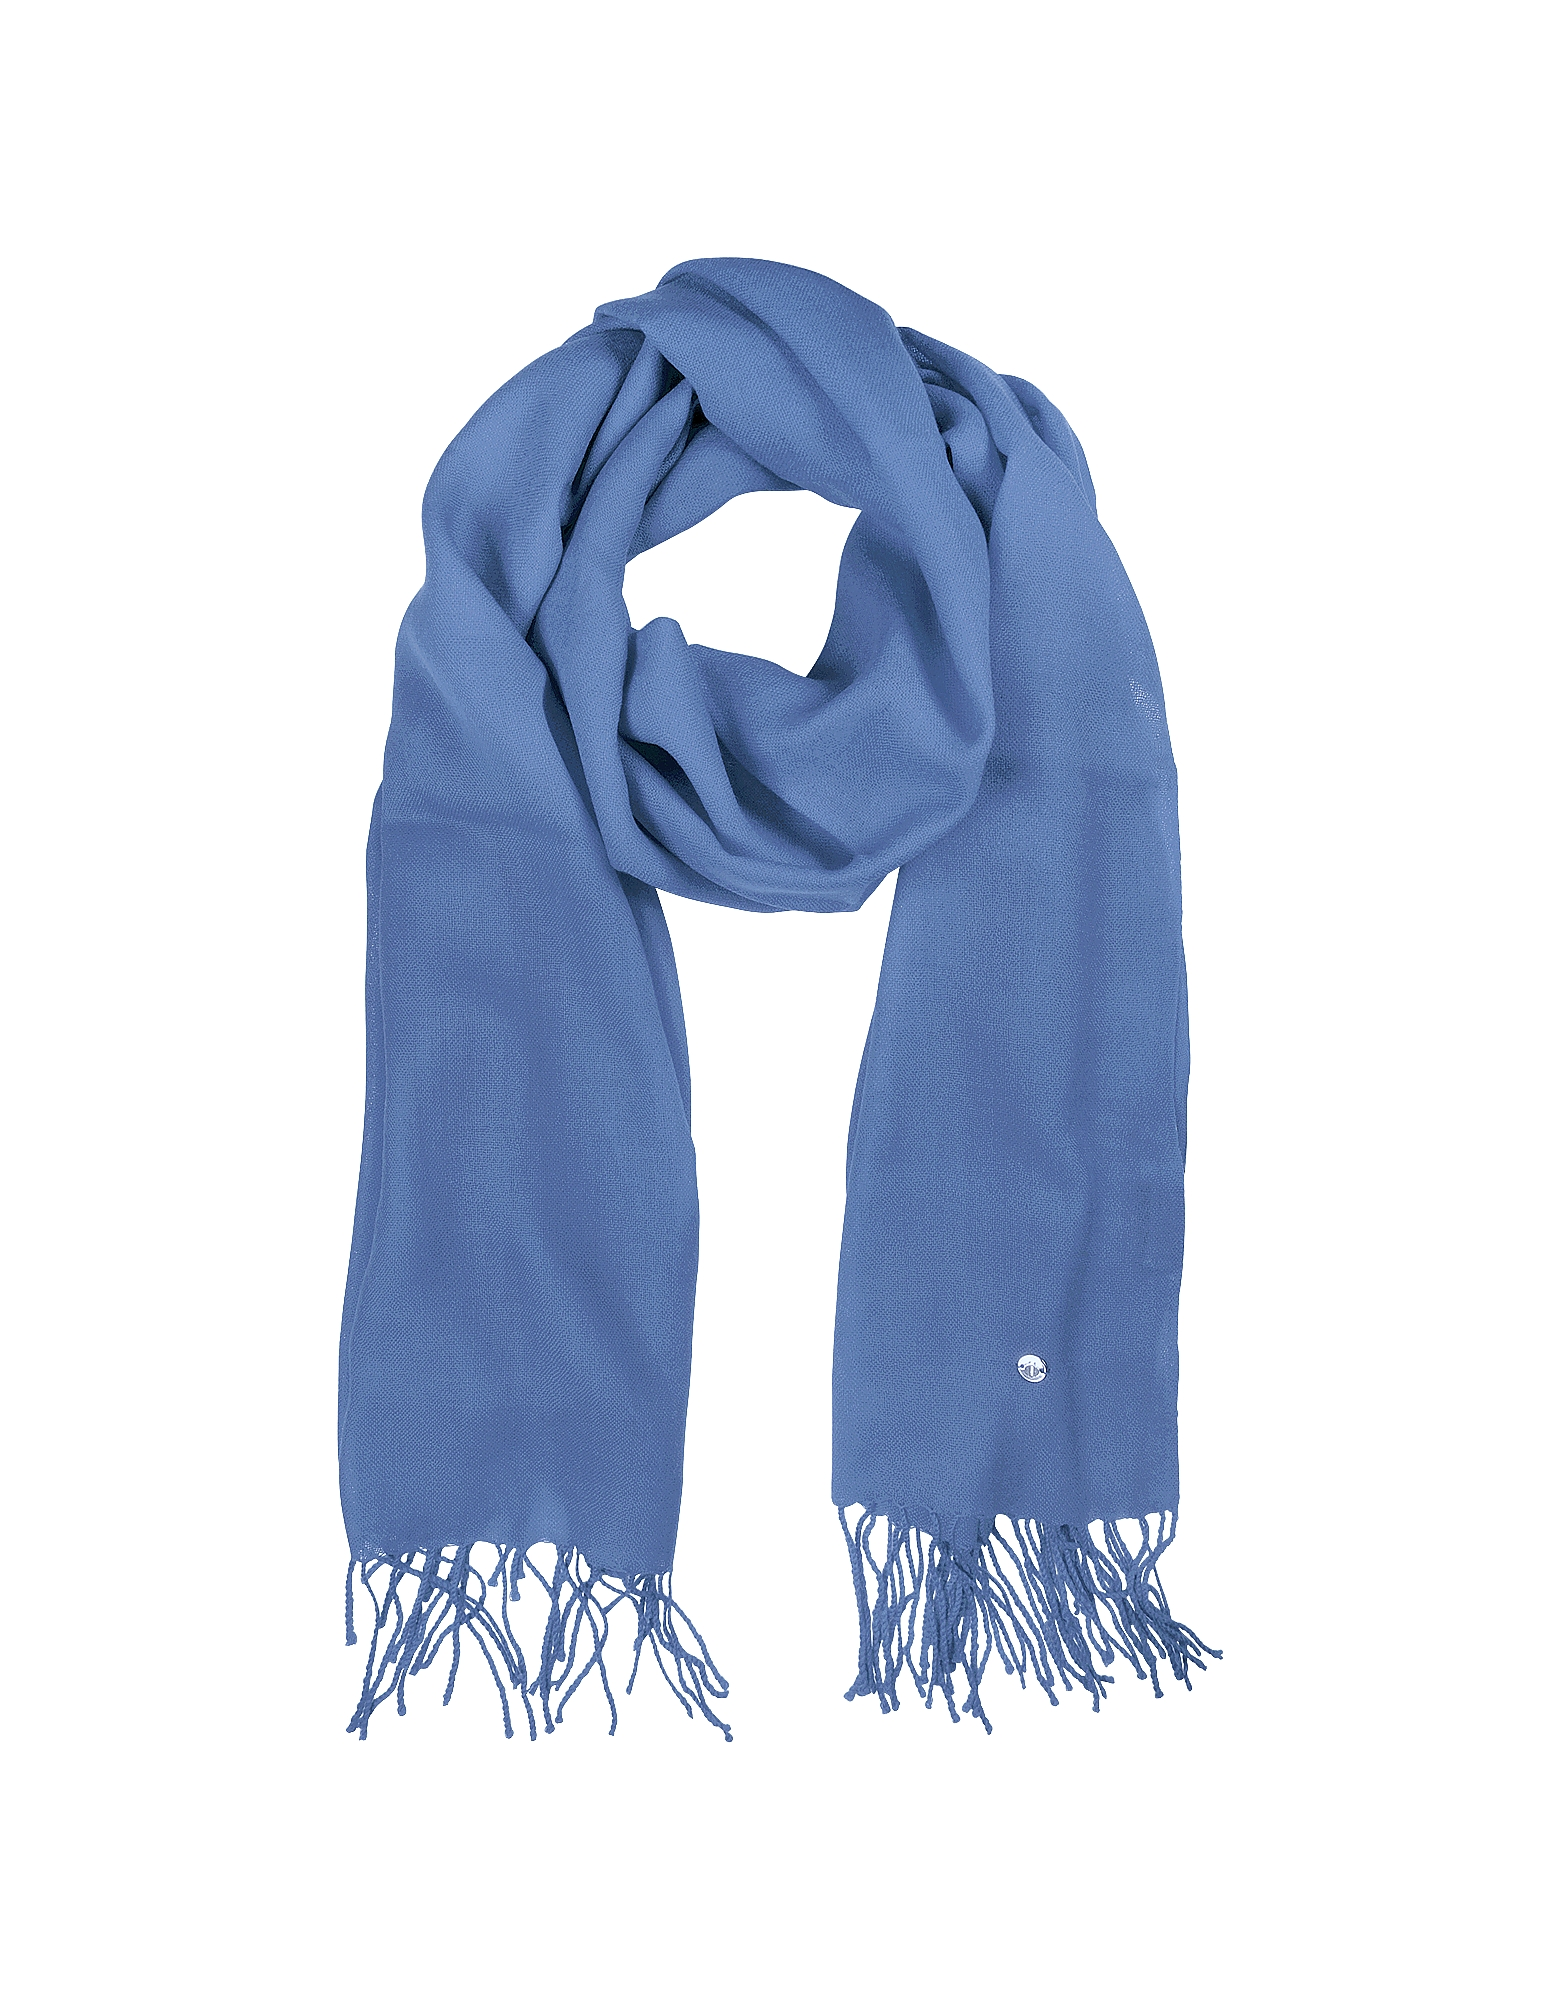 Mila Schon Long Scarves, Light Blue Wool and Cashmere Stole